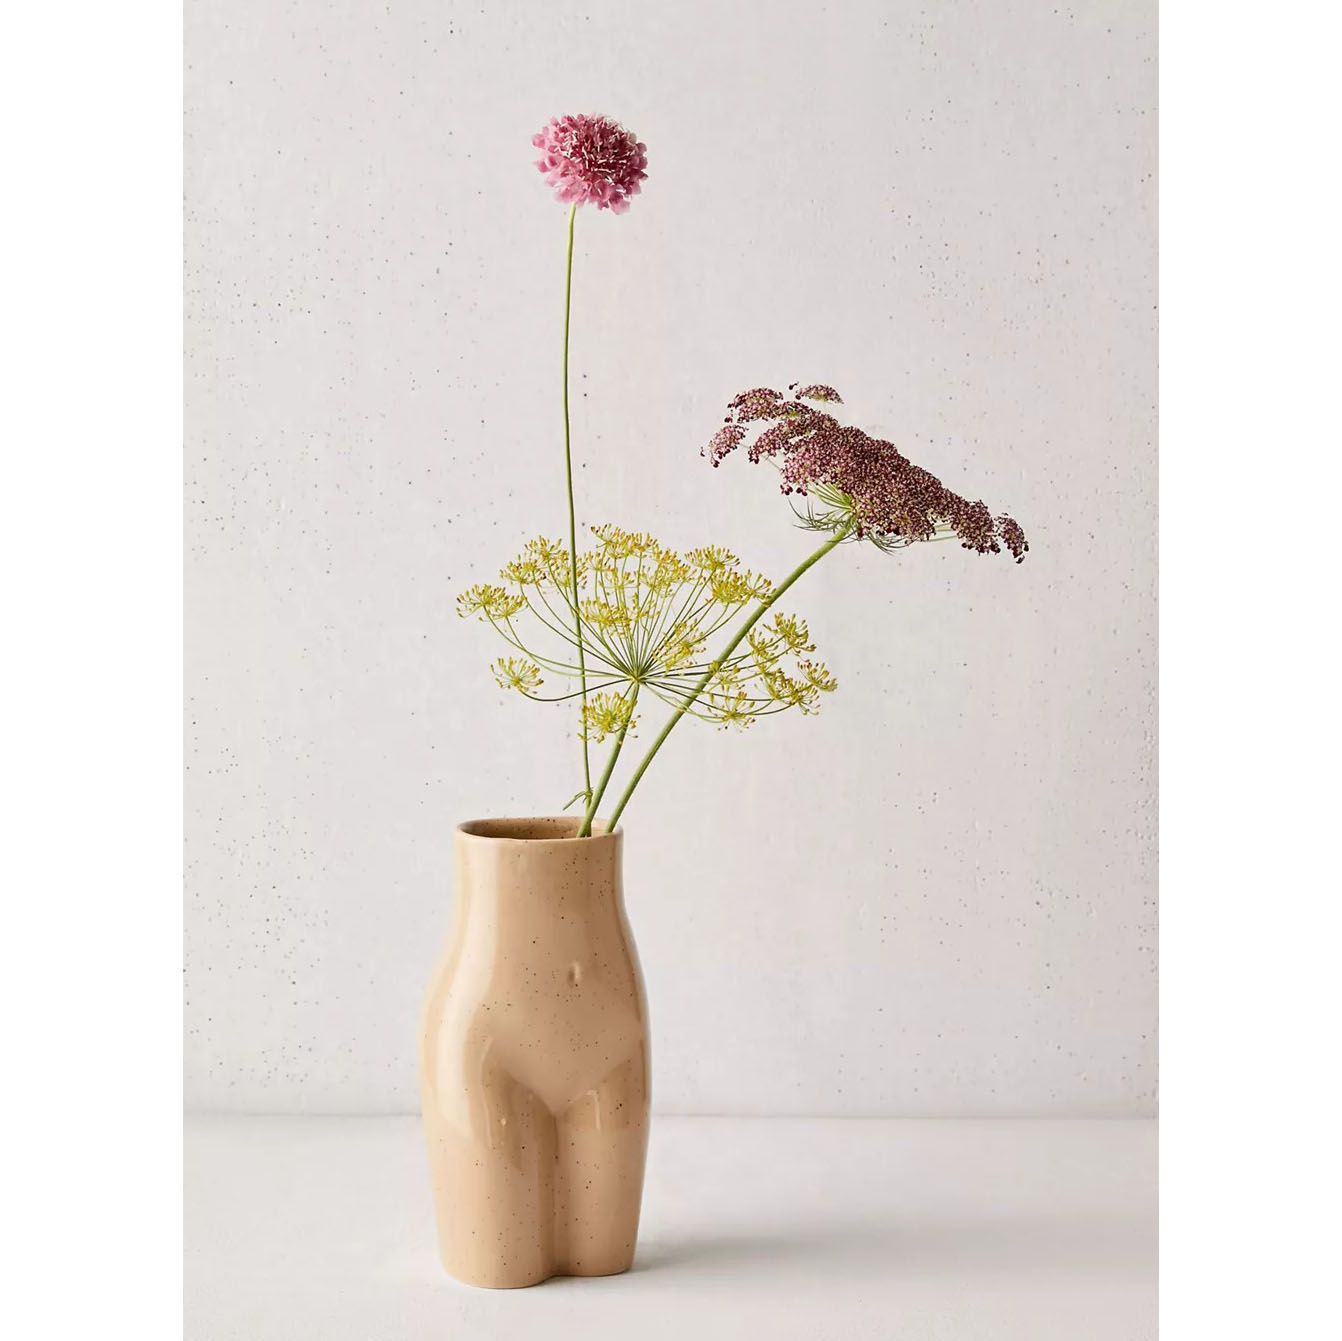 Urban Outfitters Female Form Vase